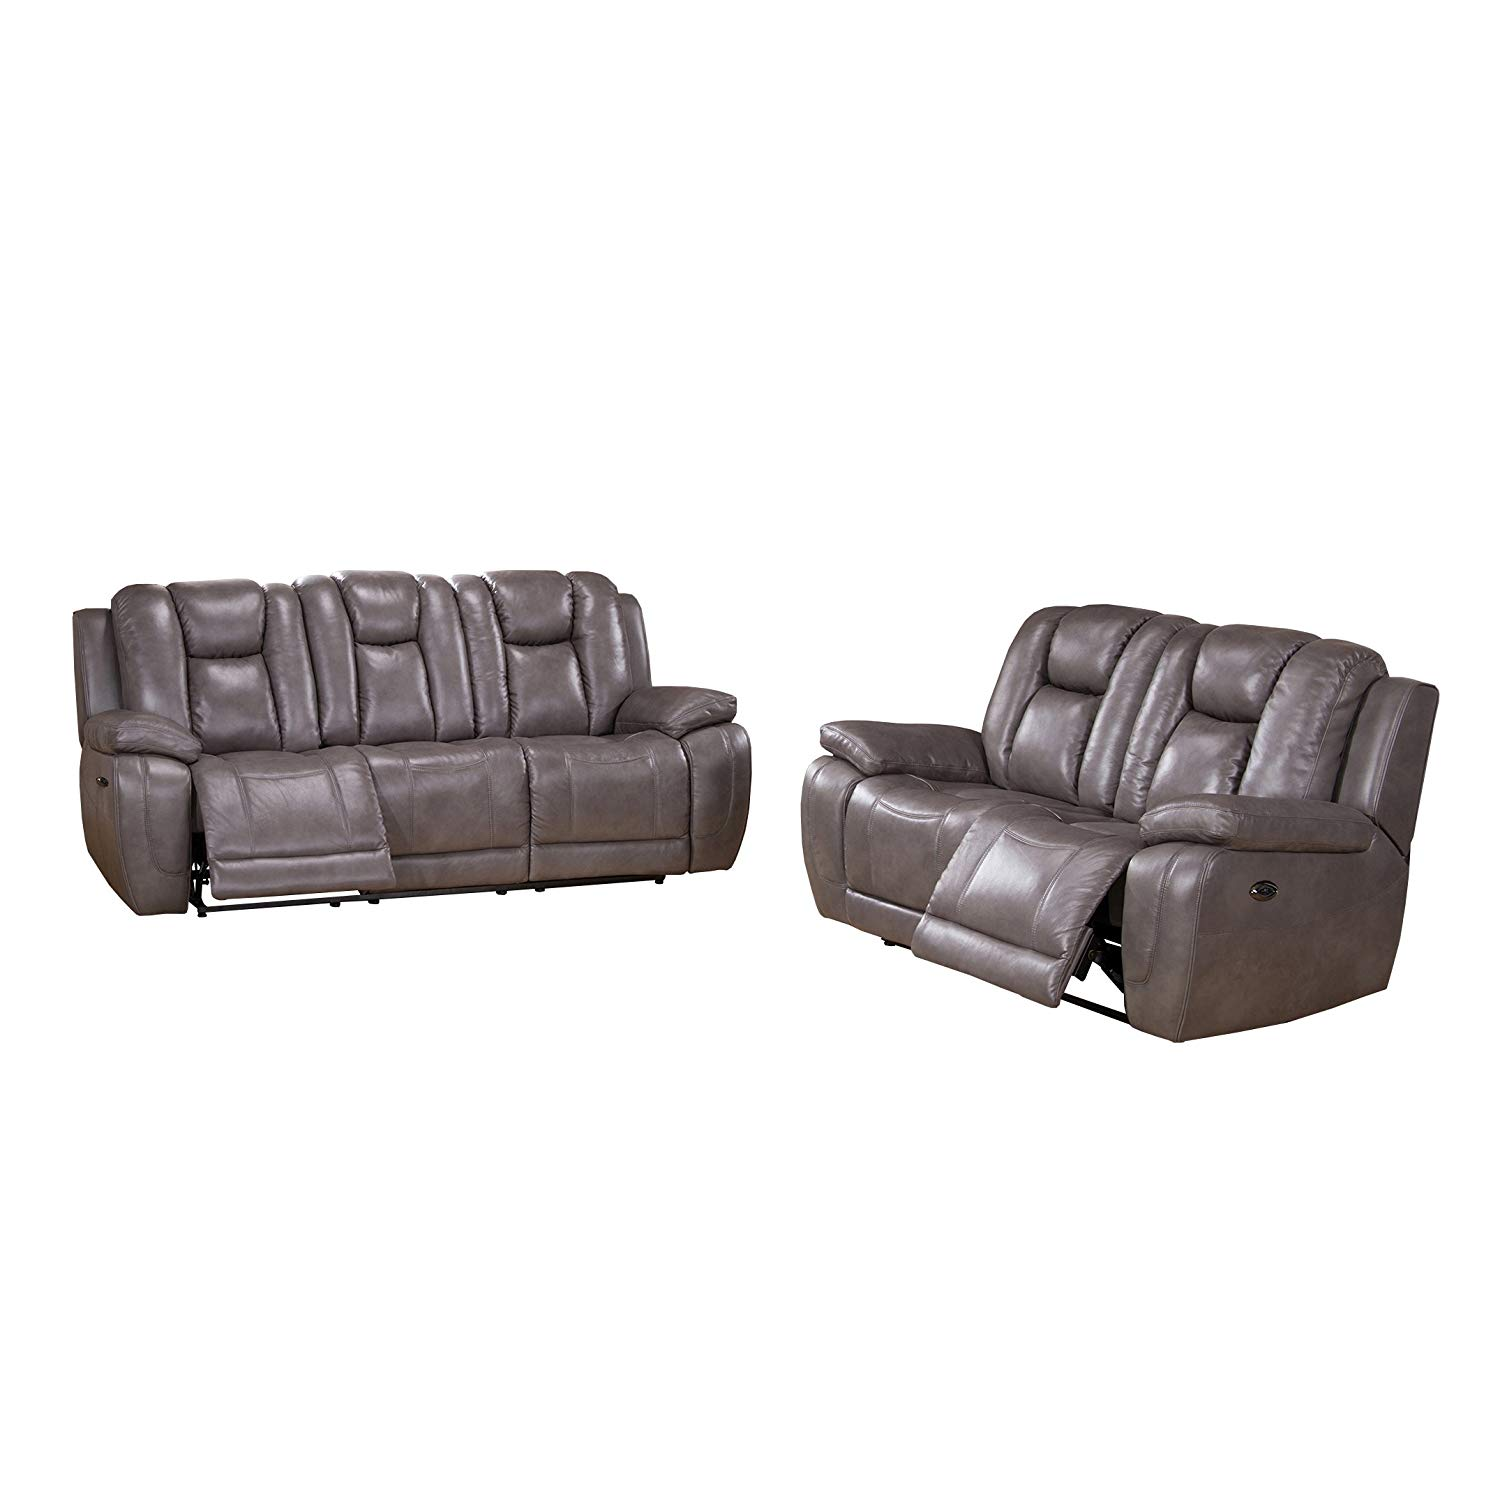 Get Quotations · Coja By Sofa4life Kenway Leather Power Sofa And Loveseat  Recliner Set, Gray